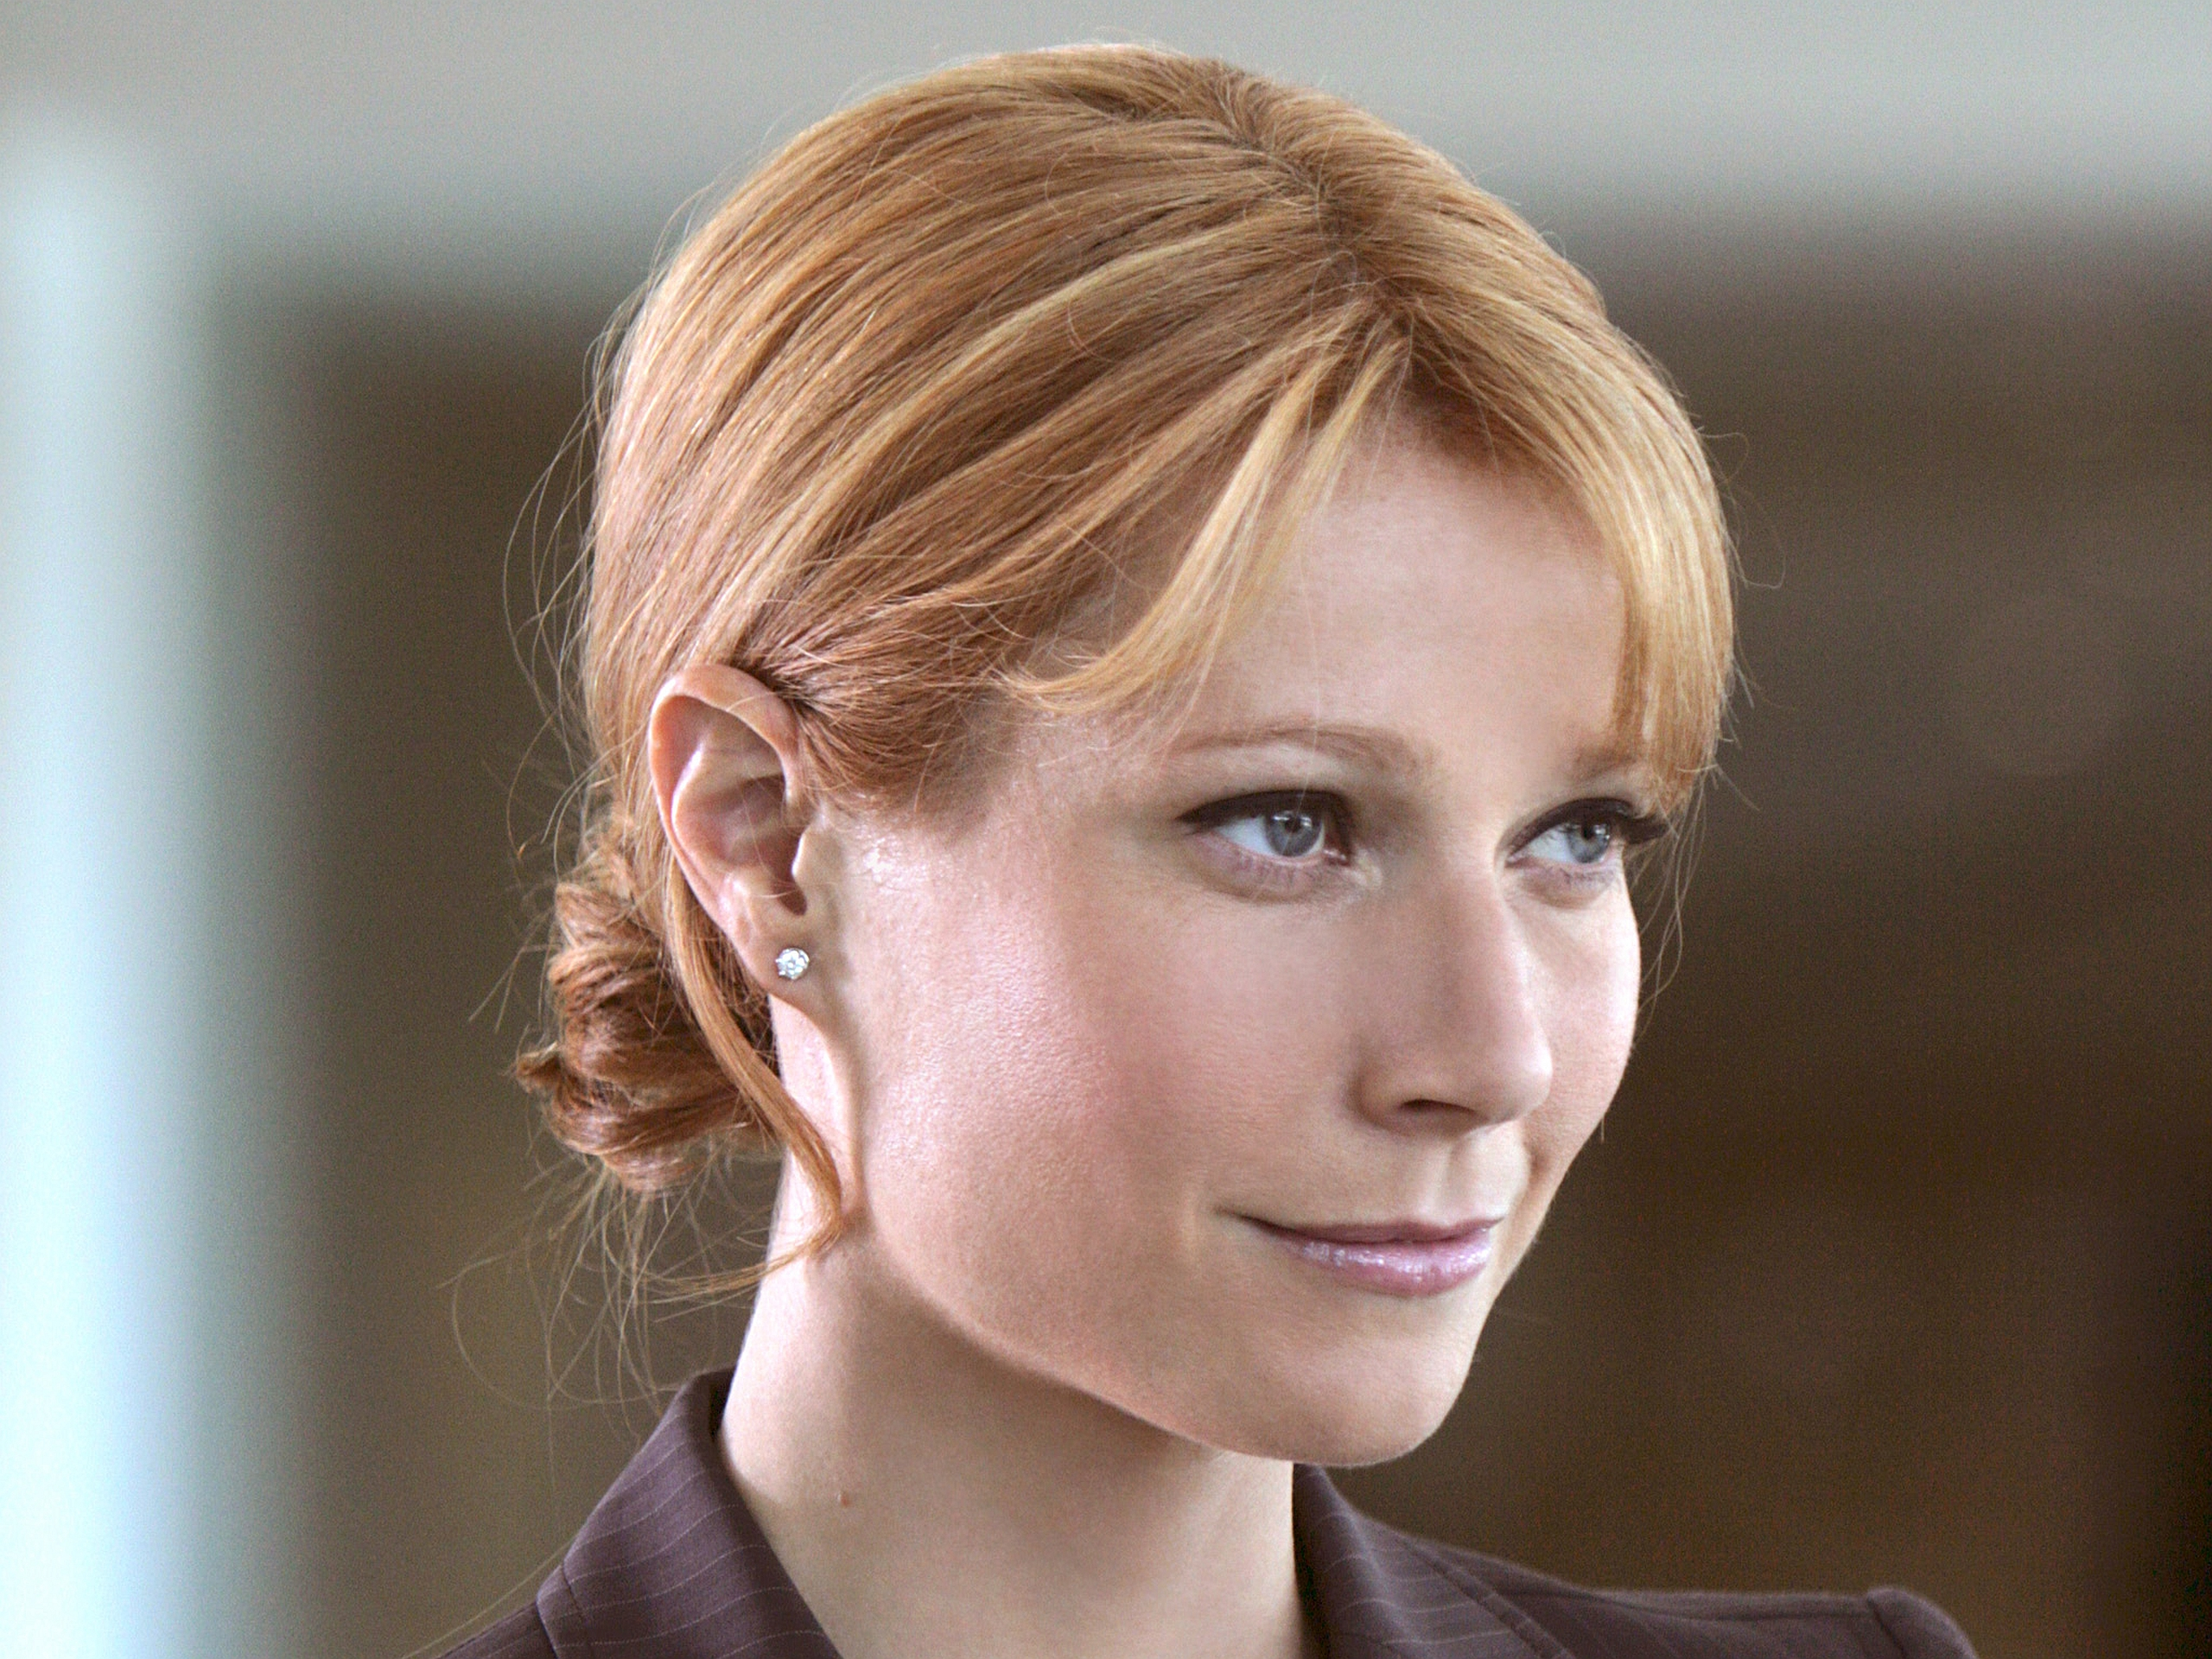 Gwyneth Paltrow Face Wallpaper Pictures 53045 2560x1920px 2560x1920